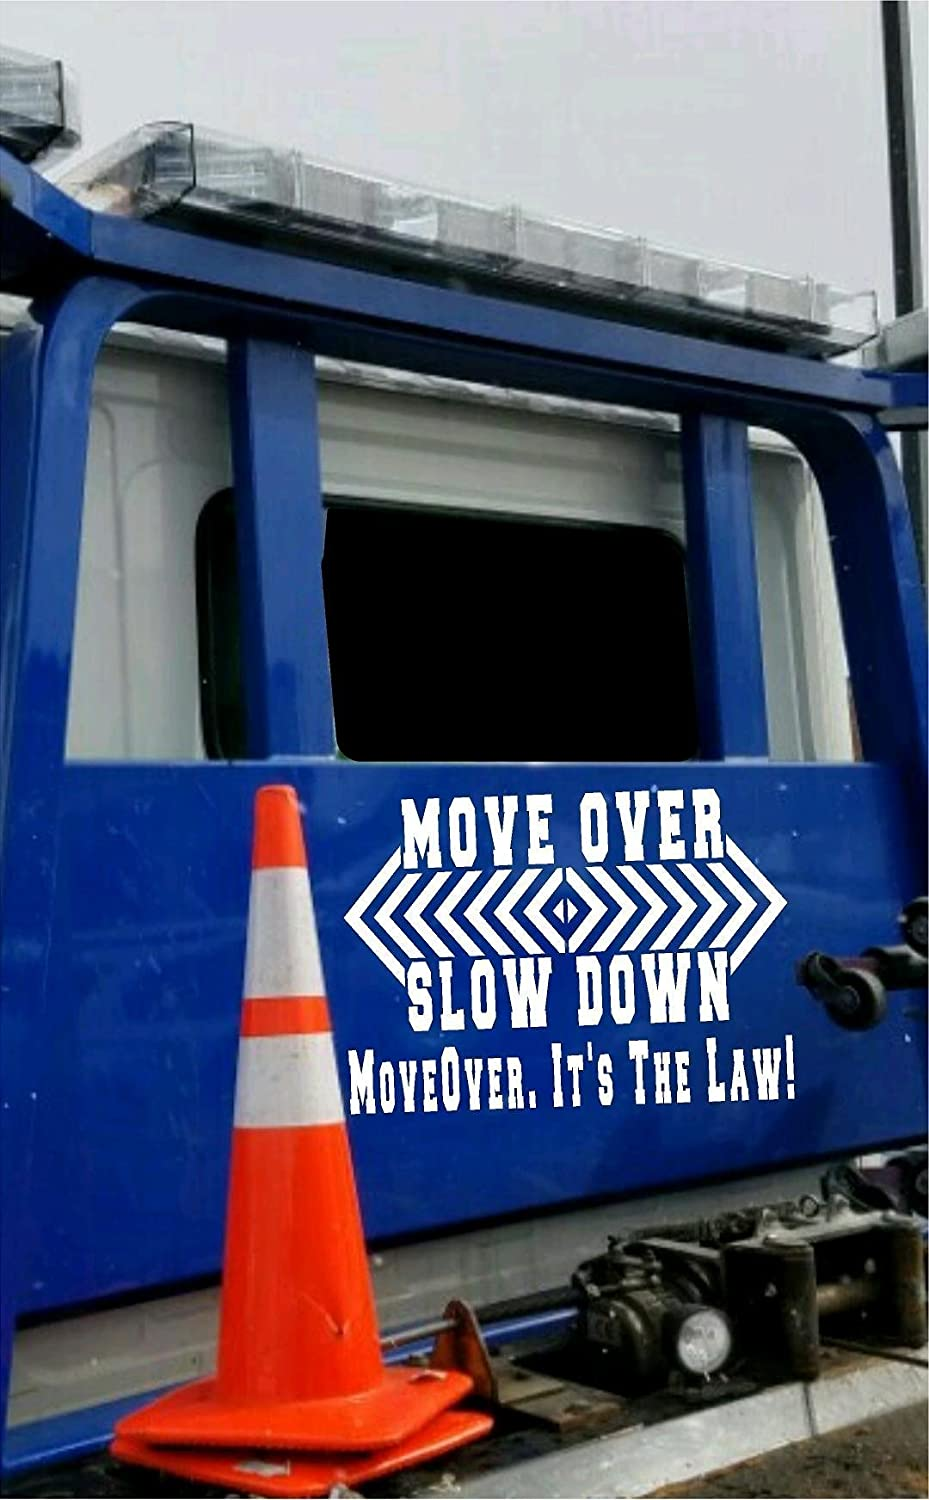 Rapid rise Move over slow down Mesa Mall it's the law window rear E tow Custom truck